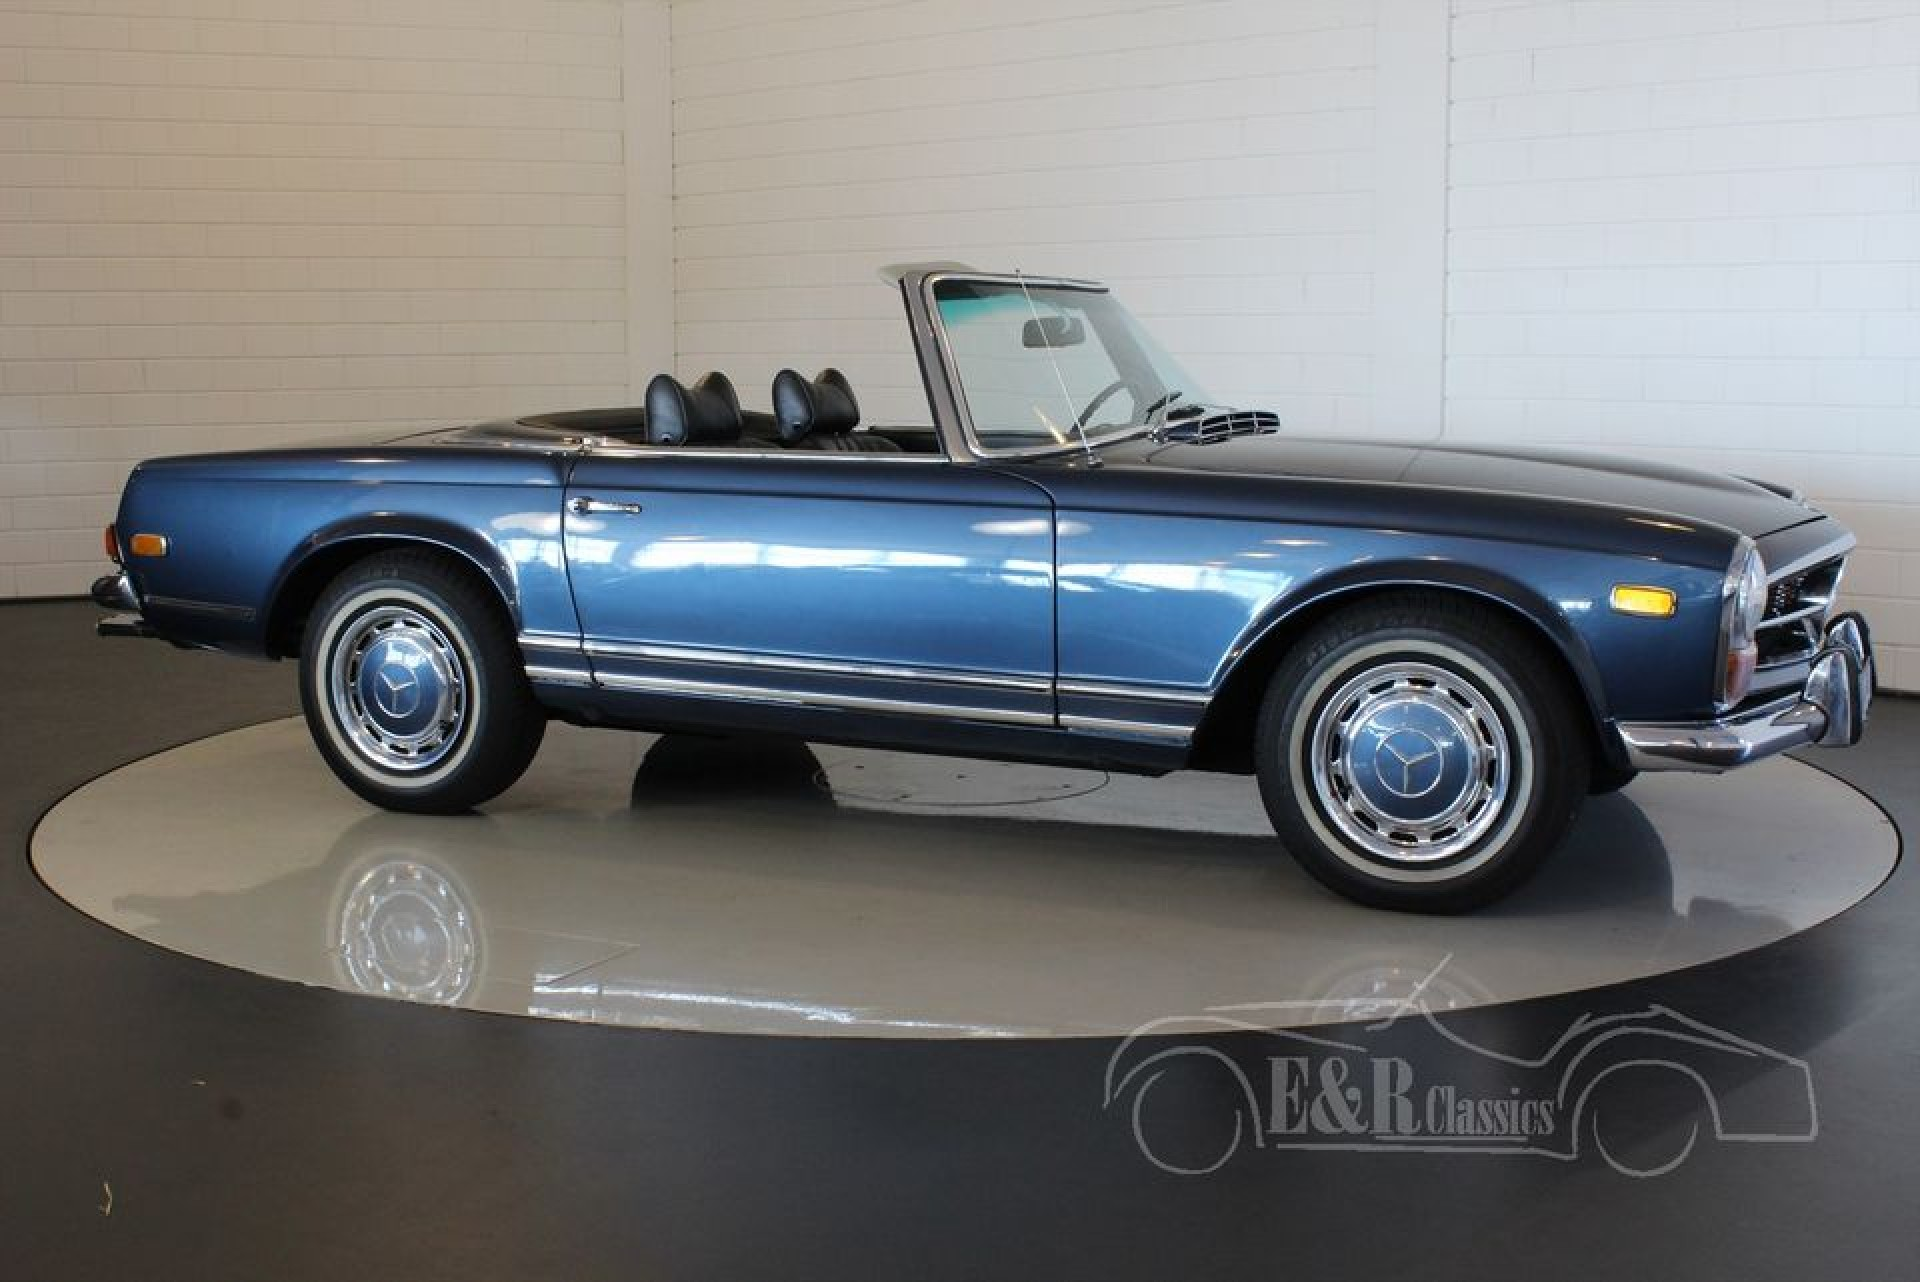 Mercedes benz 280sl automatic for sale at erclassics for Mercedes benz classics for sale